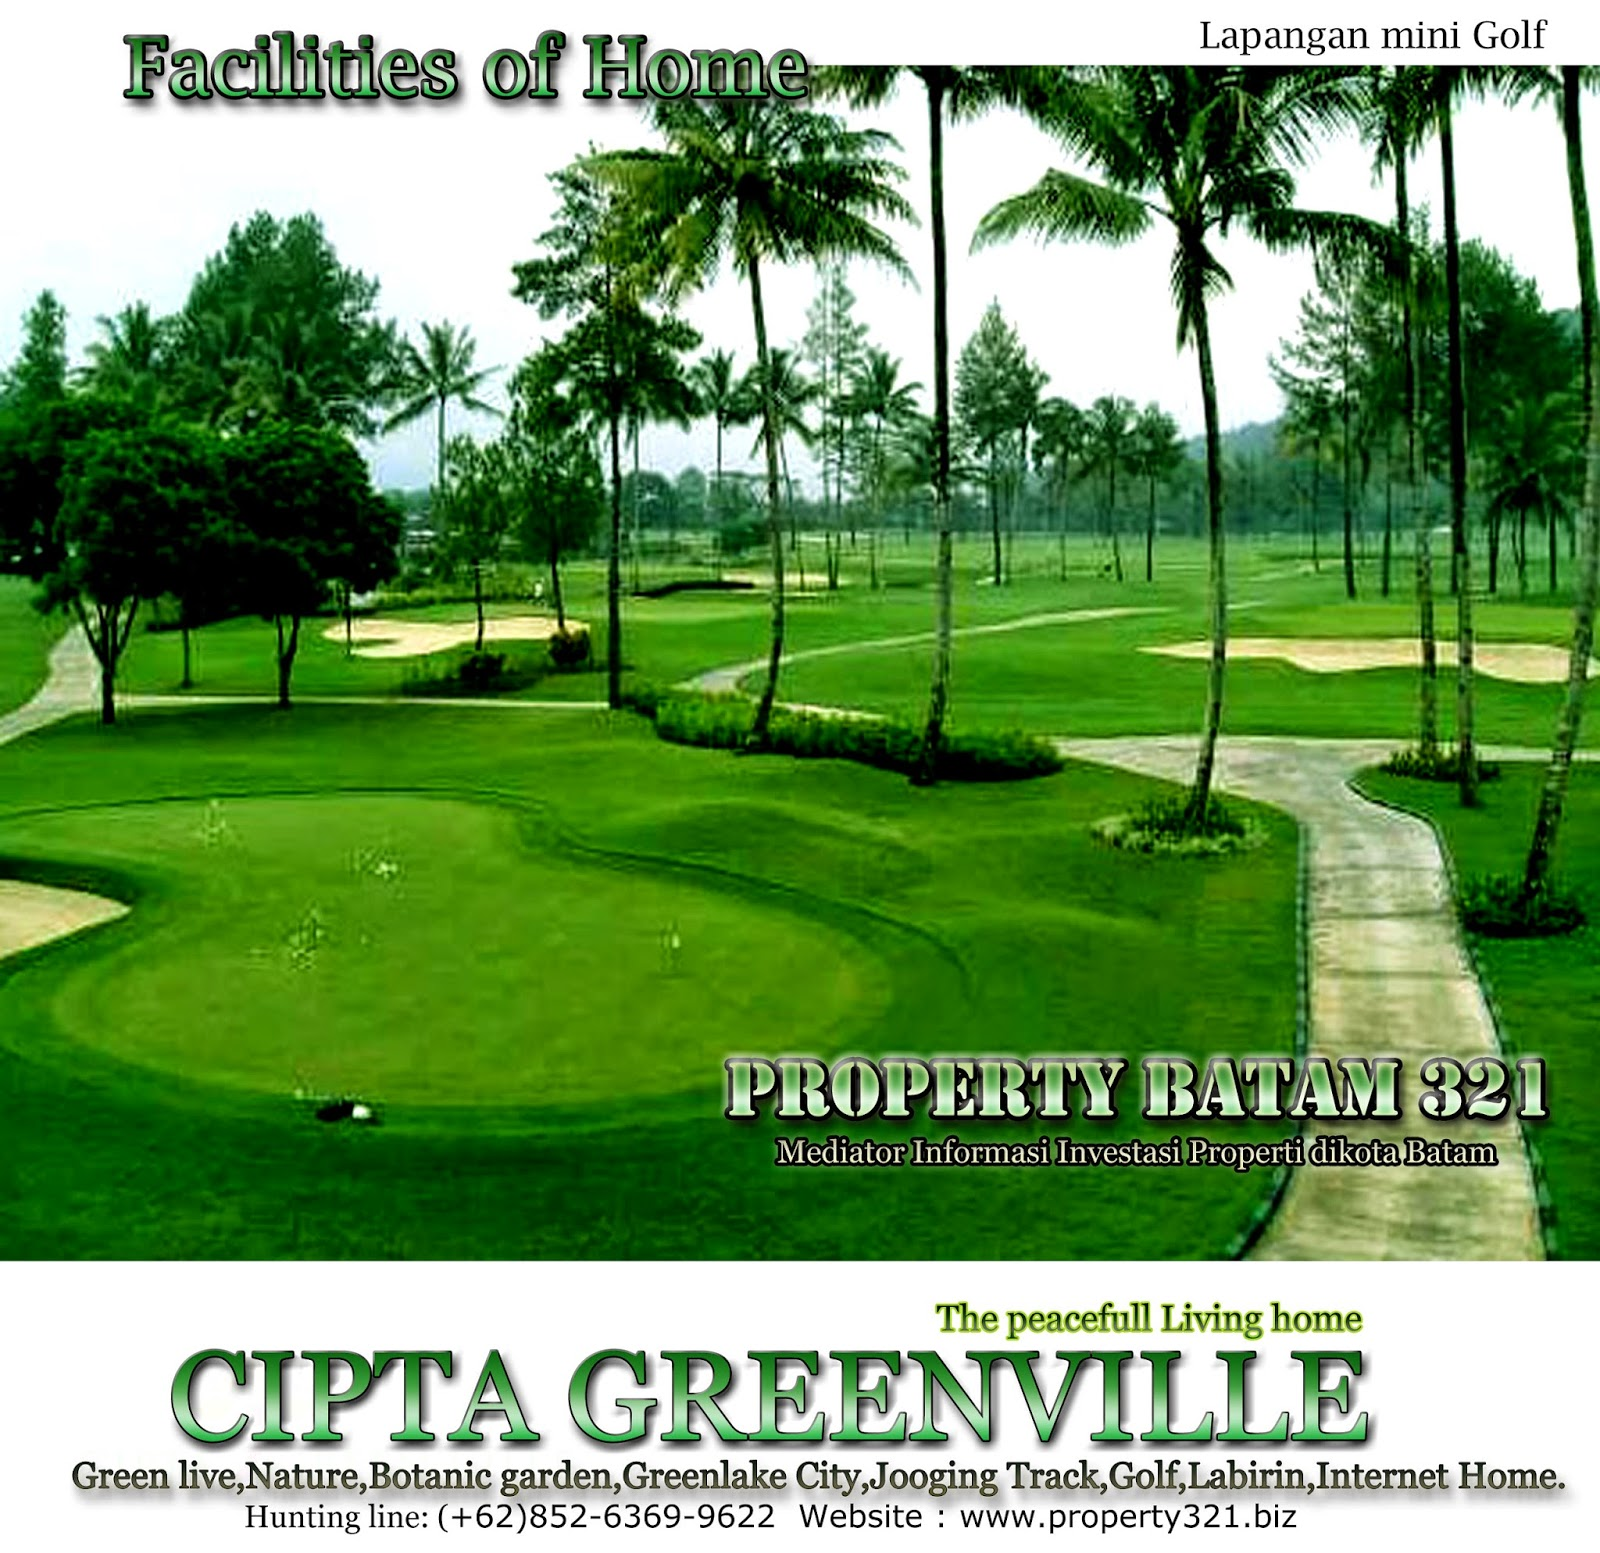 Lapangan Golf mini Cipta greenville batam.